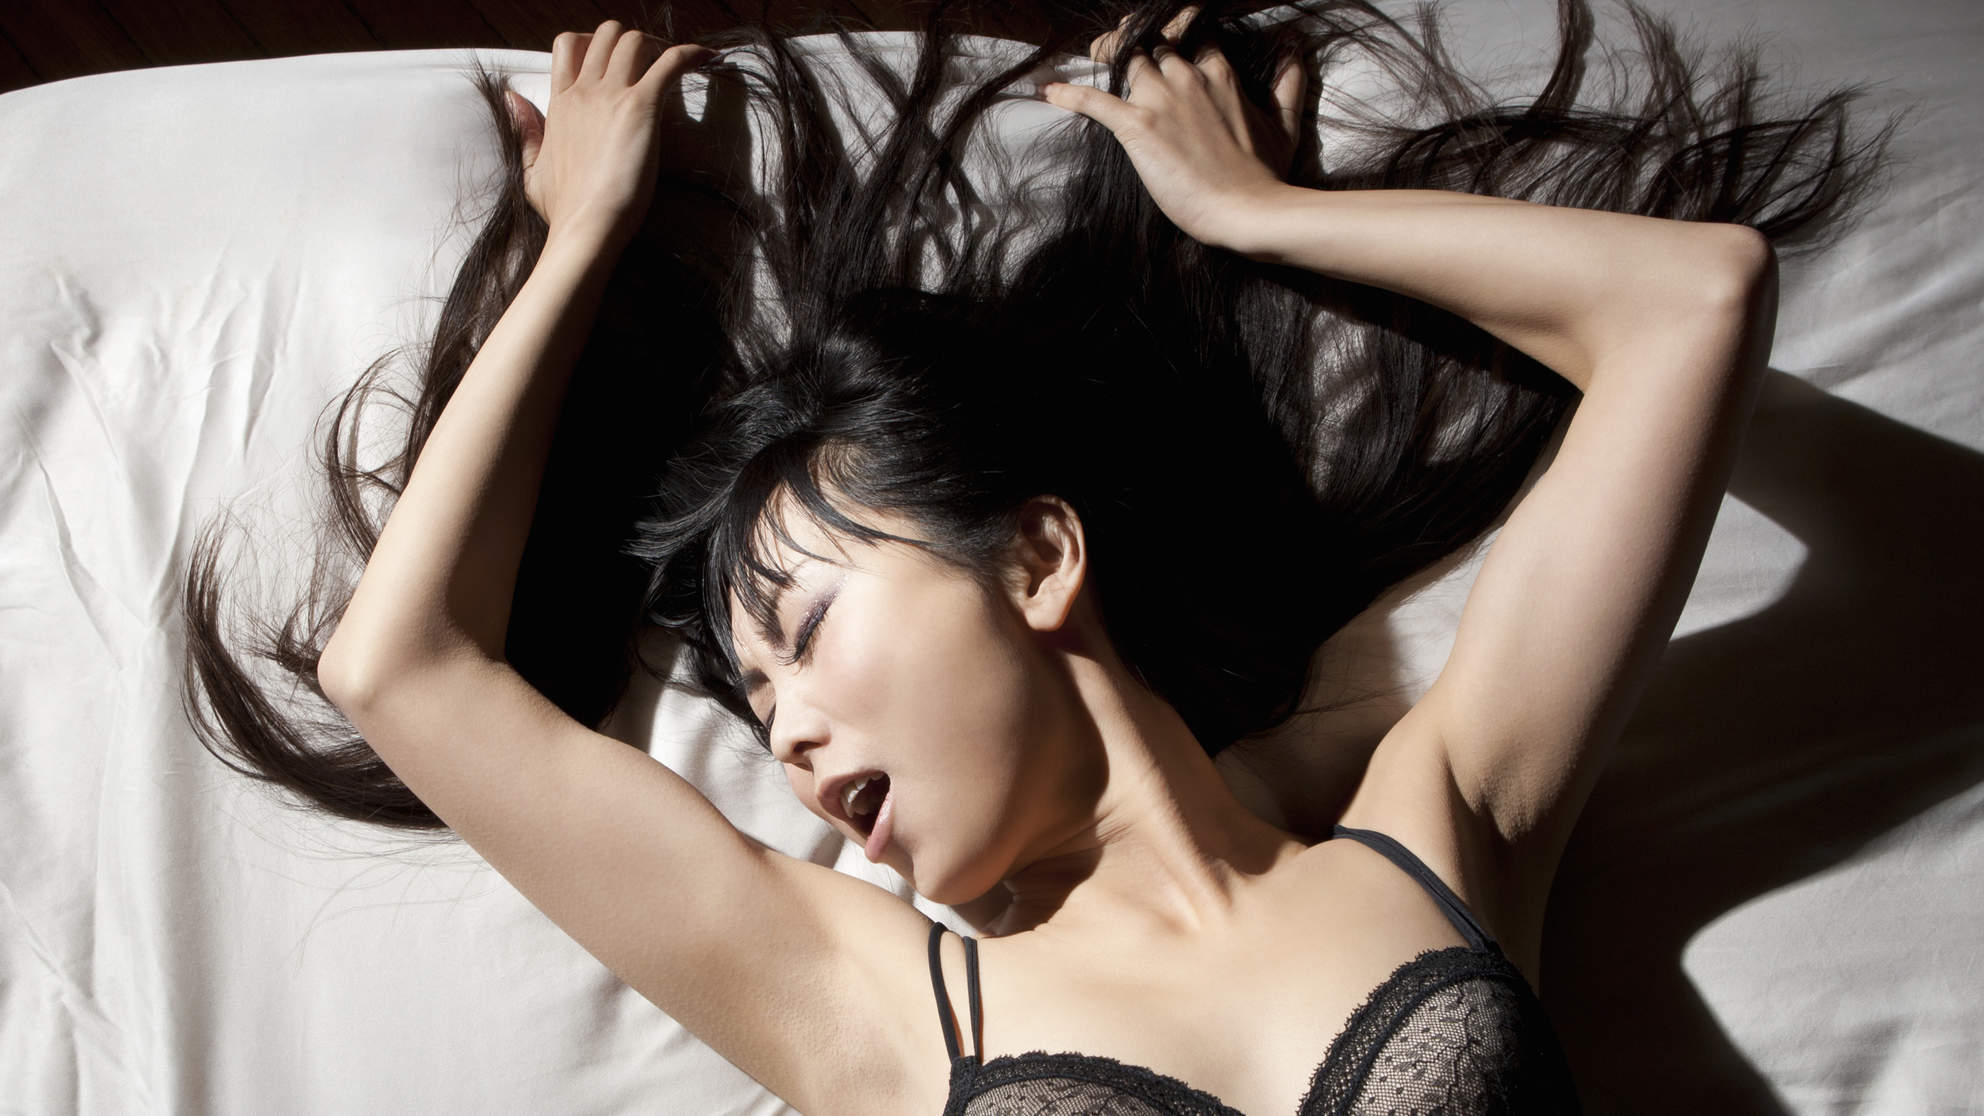 This Is How People Orgasm Around the World